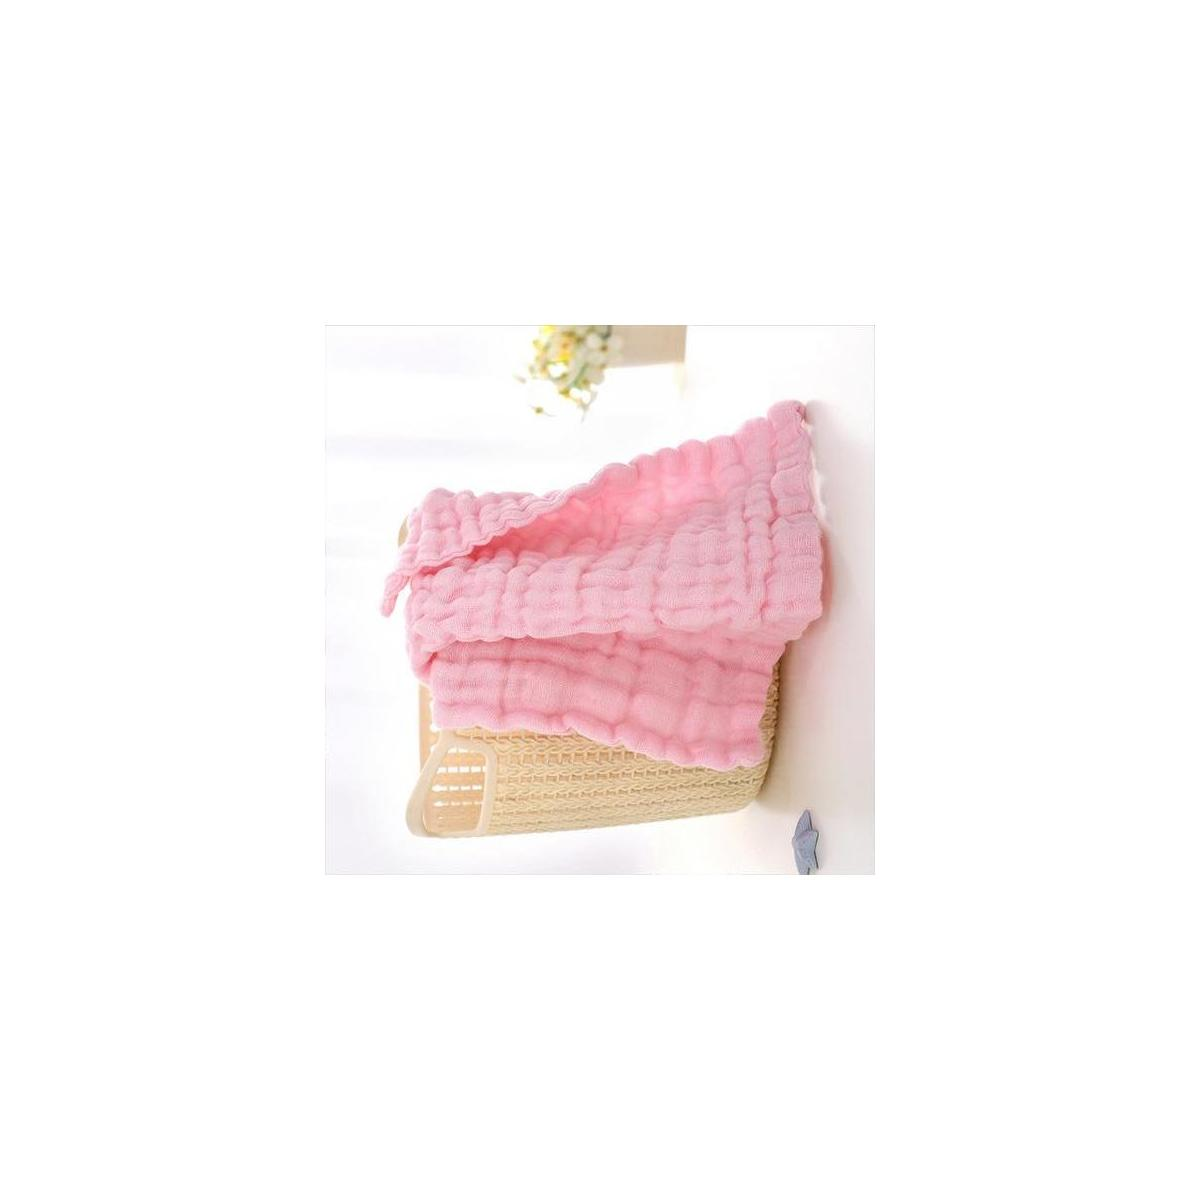 100% Organic Cotton Soft Muslin Baby Burp Cloths | 5 Pack 10 X 20 inches  | 6 Layers Extra Absorbent for Sensitive Skin-Baby